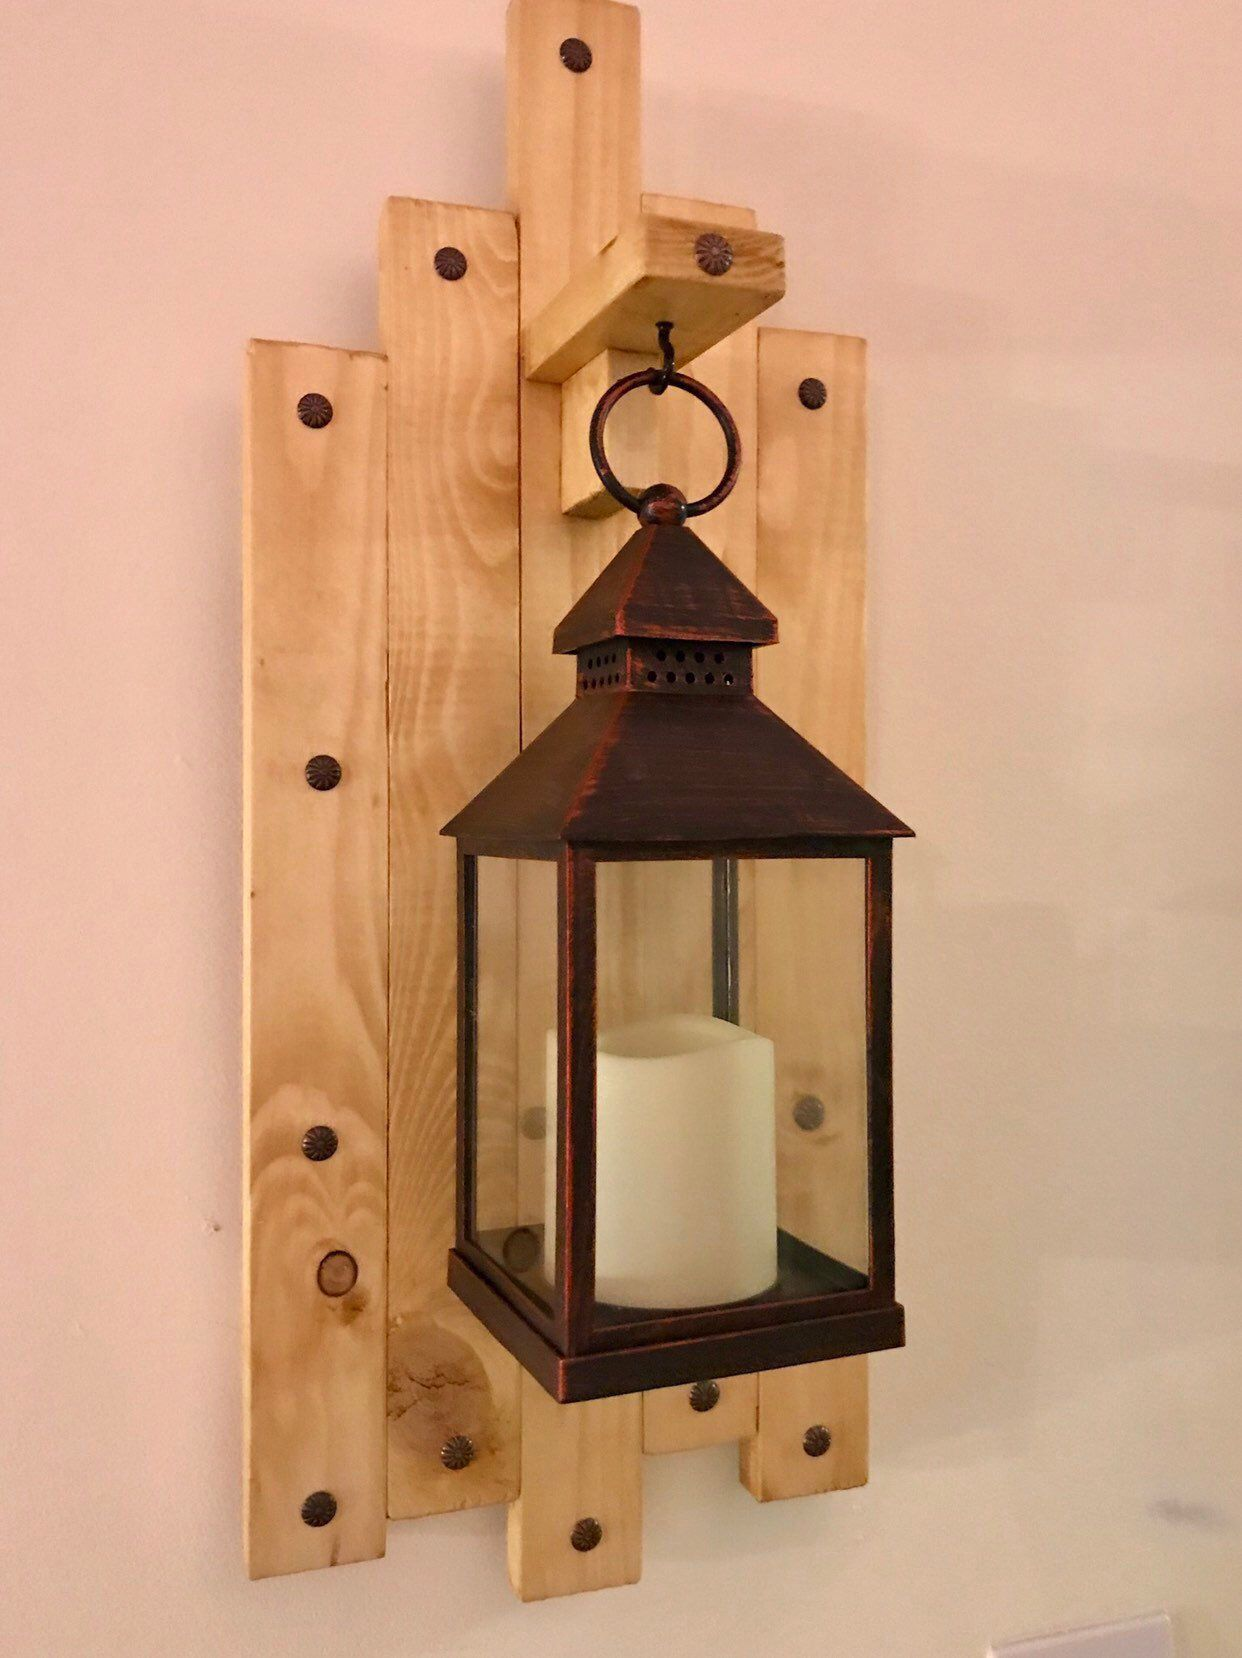 Home Decor Strong-Willed Rustic Wooden Retro Lantern Hanging Lamp Wood Decoration Candle Holder Table Vintage Online Discount Home & Garden